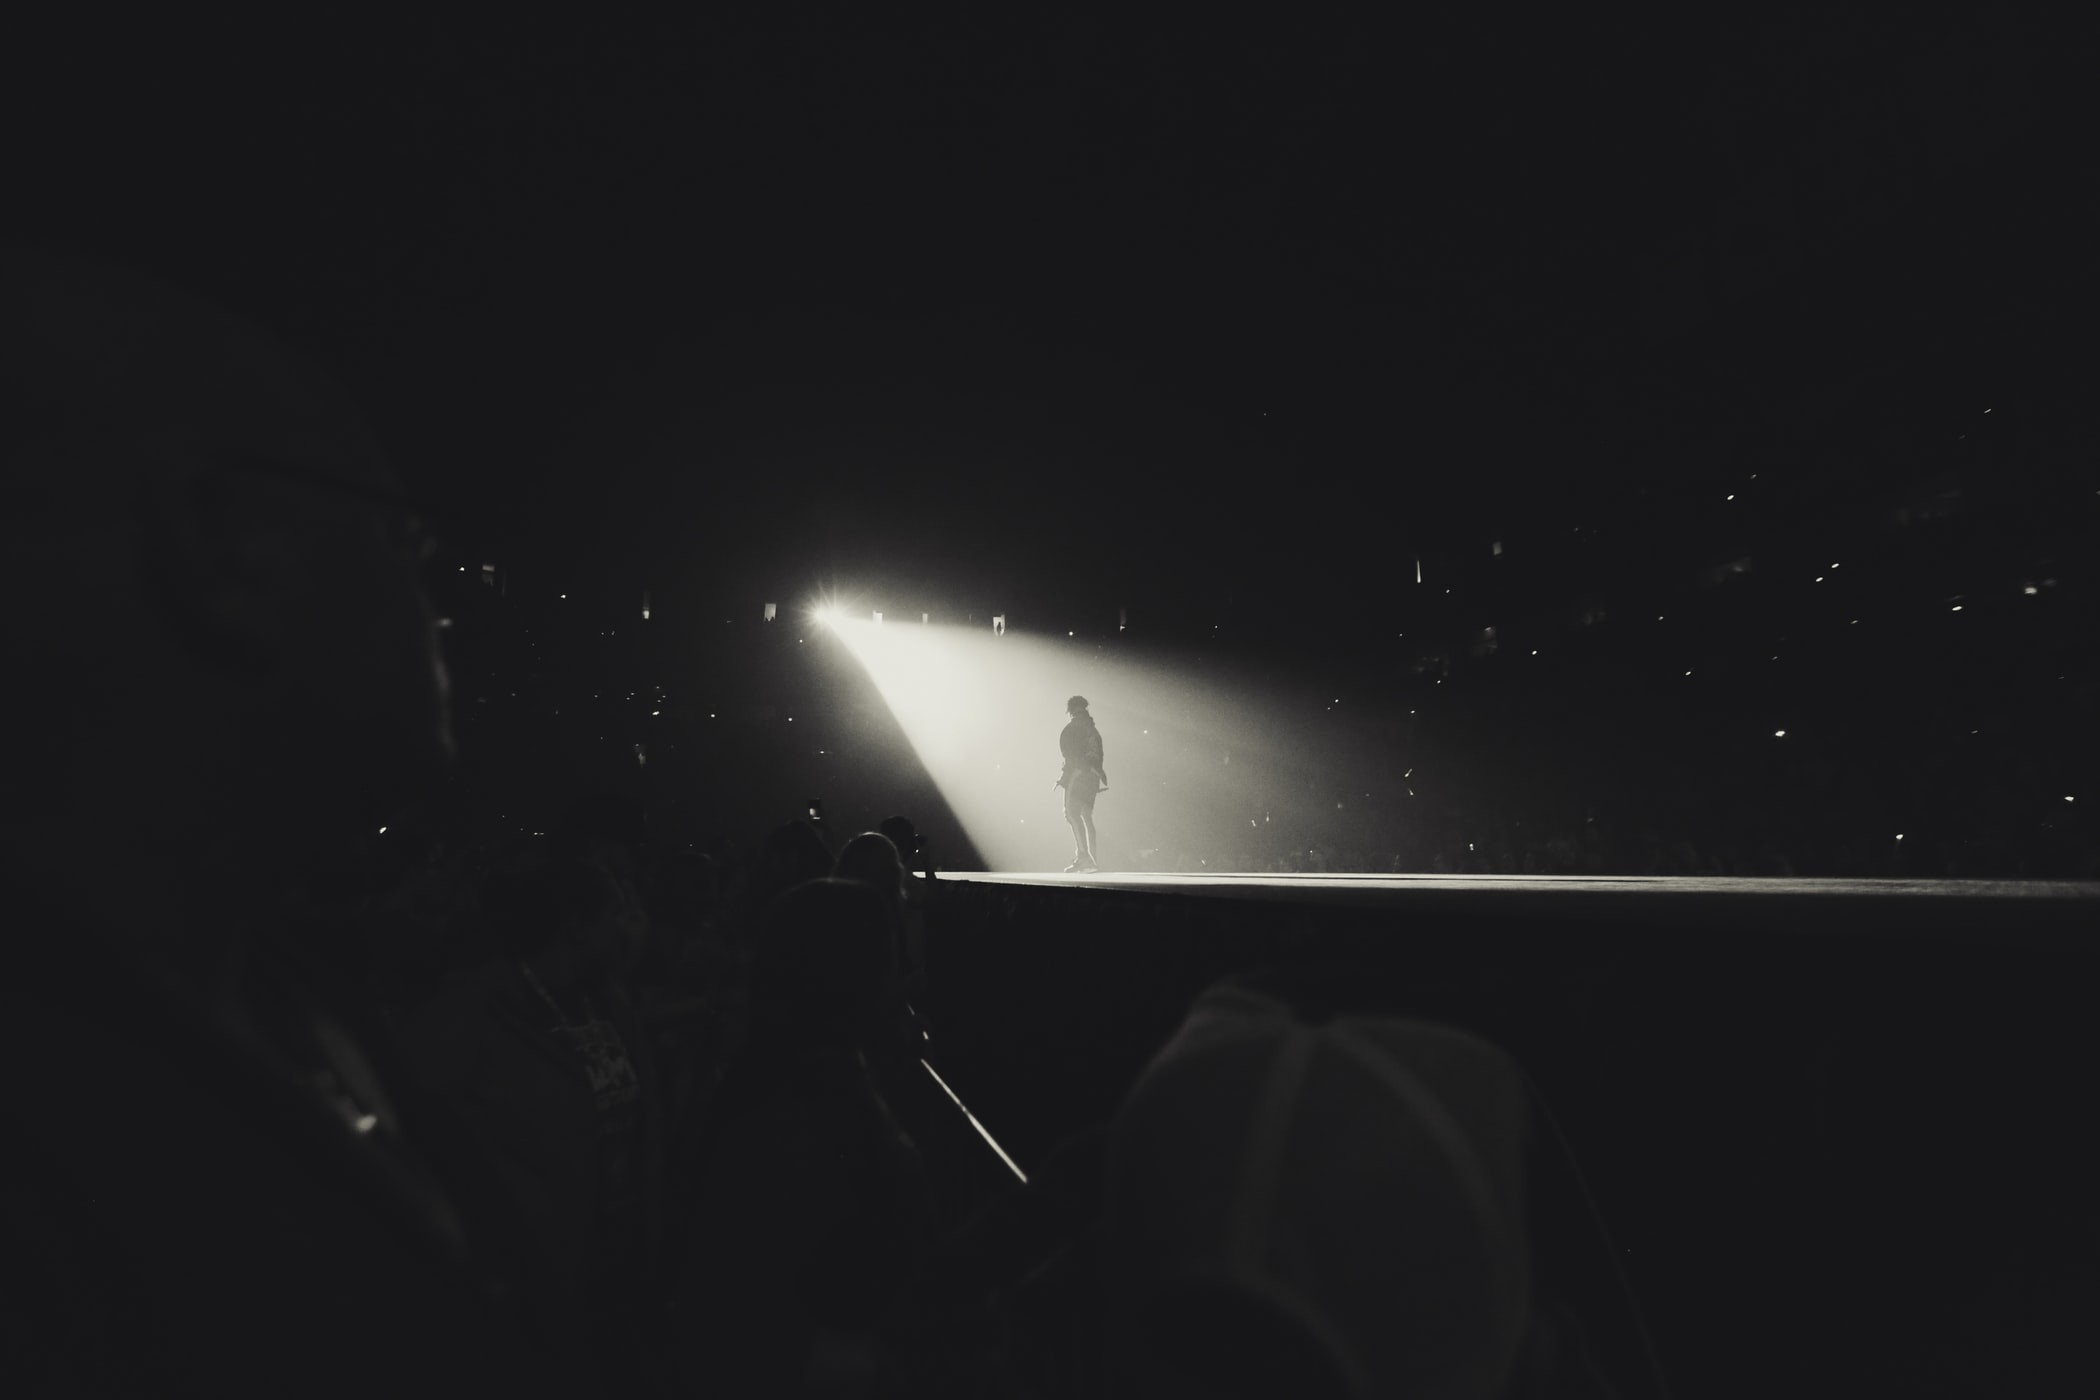 Black and White Photograph with a single person on stage back to camera, spotlight shining brightly.